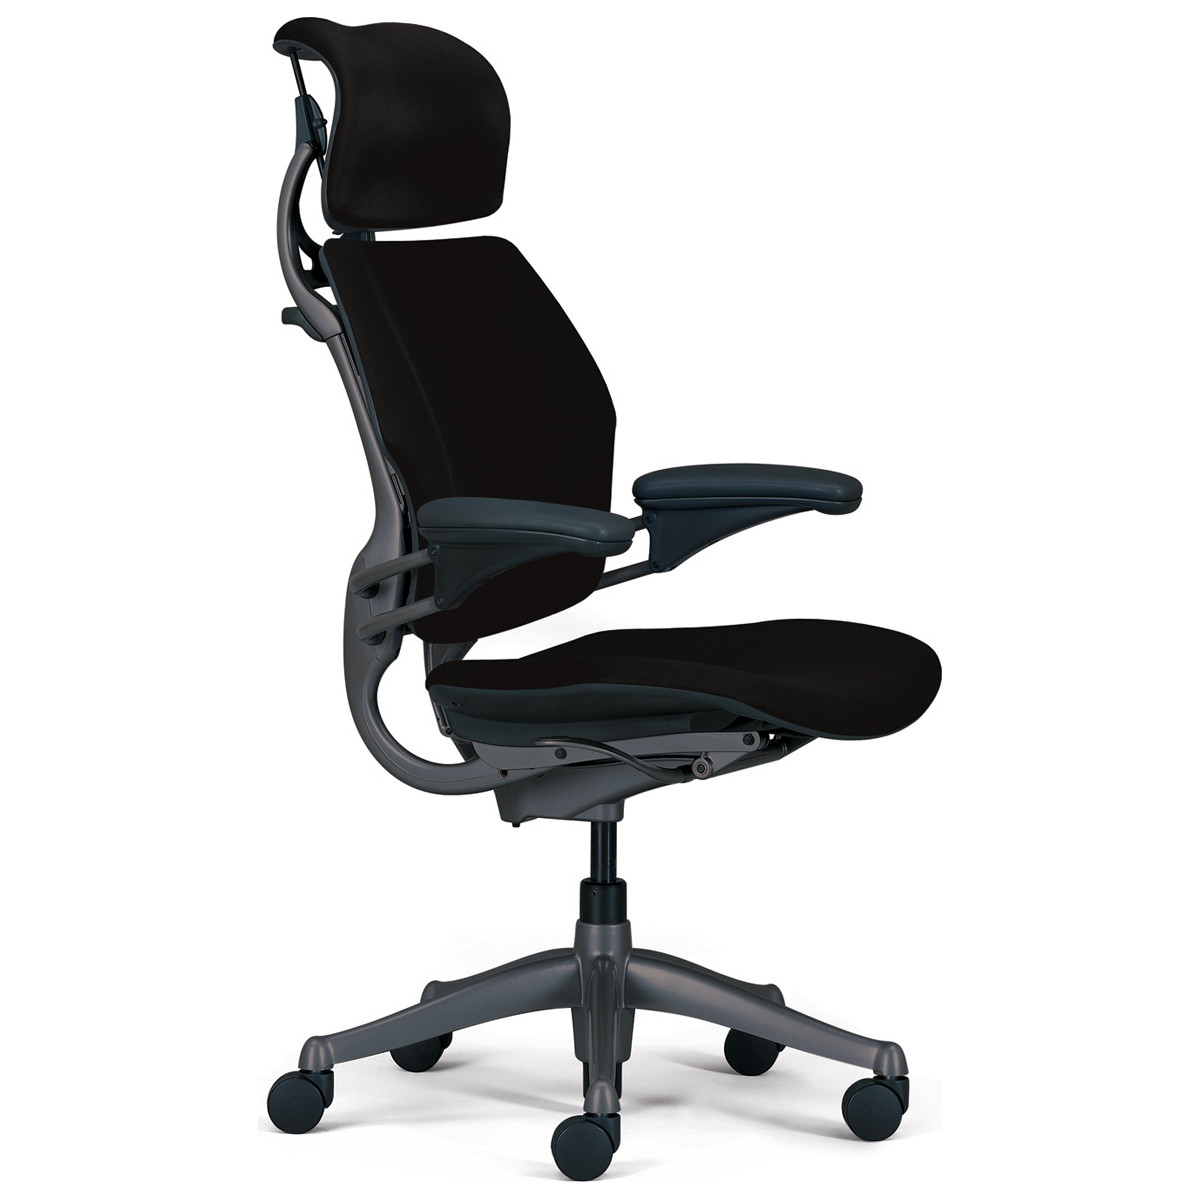 Humanscale Freedom Chair an ergonomic chair with modern styling